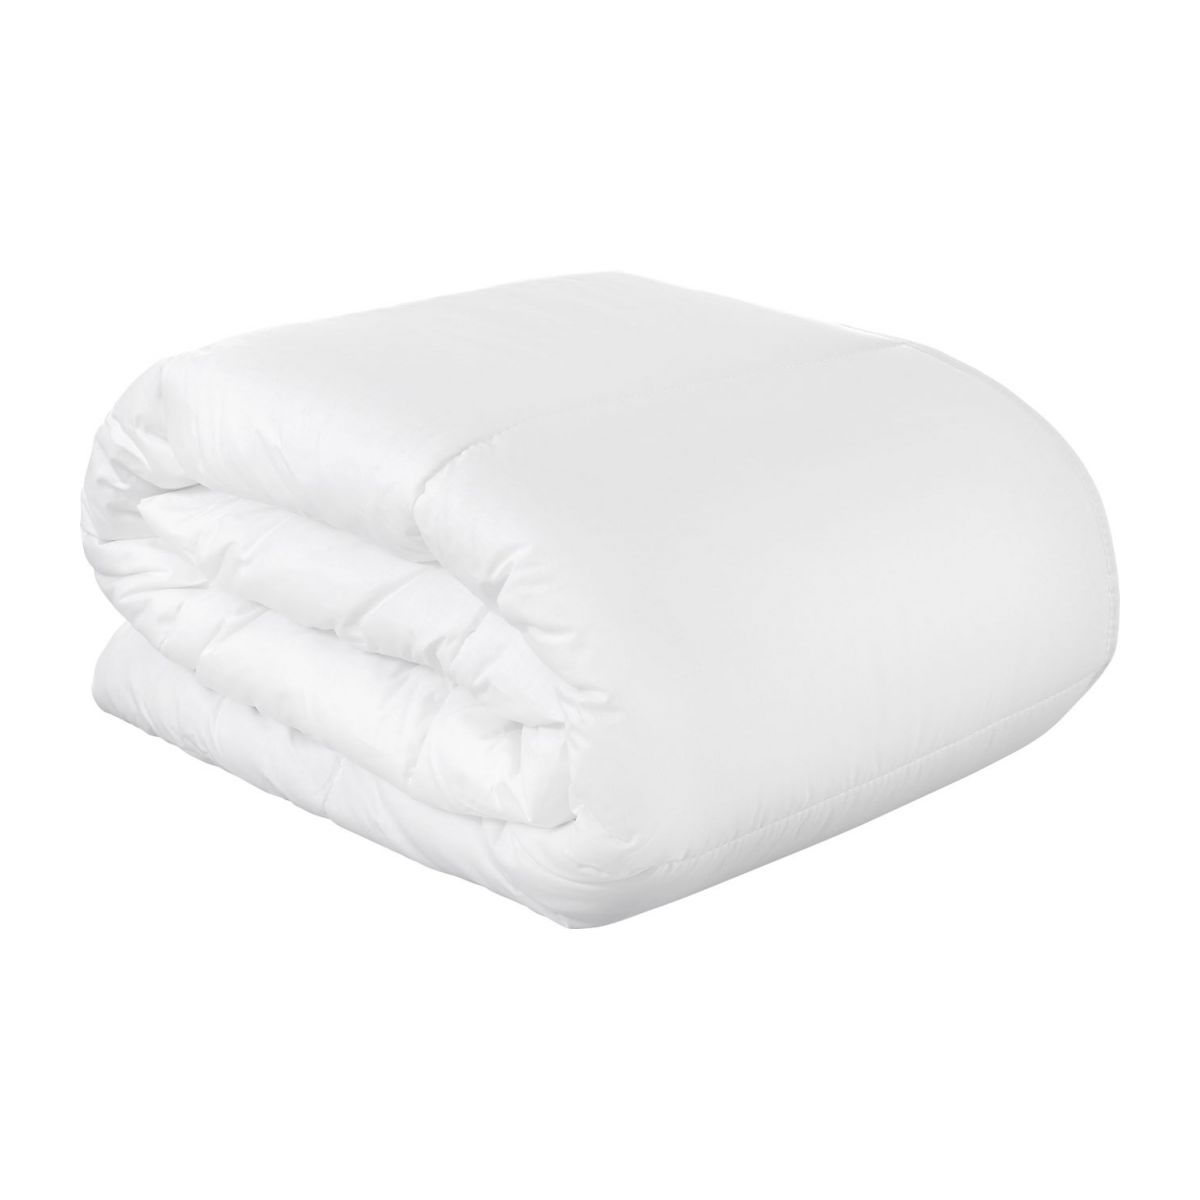 Couette 140x200, 300g blanche n°4